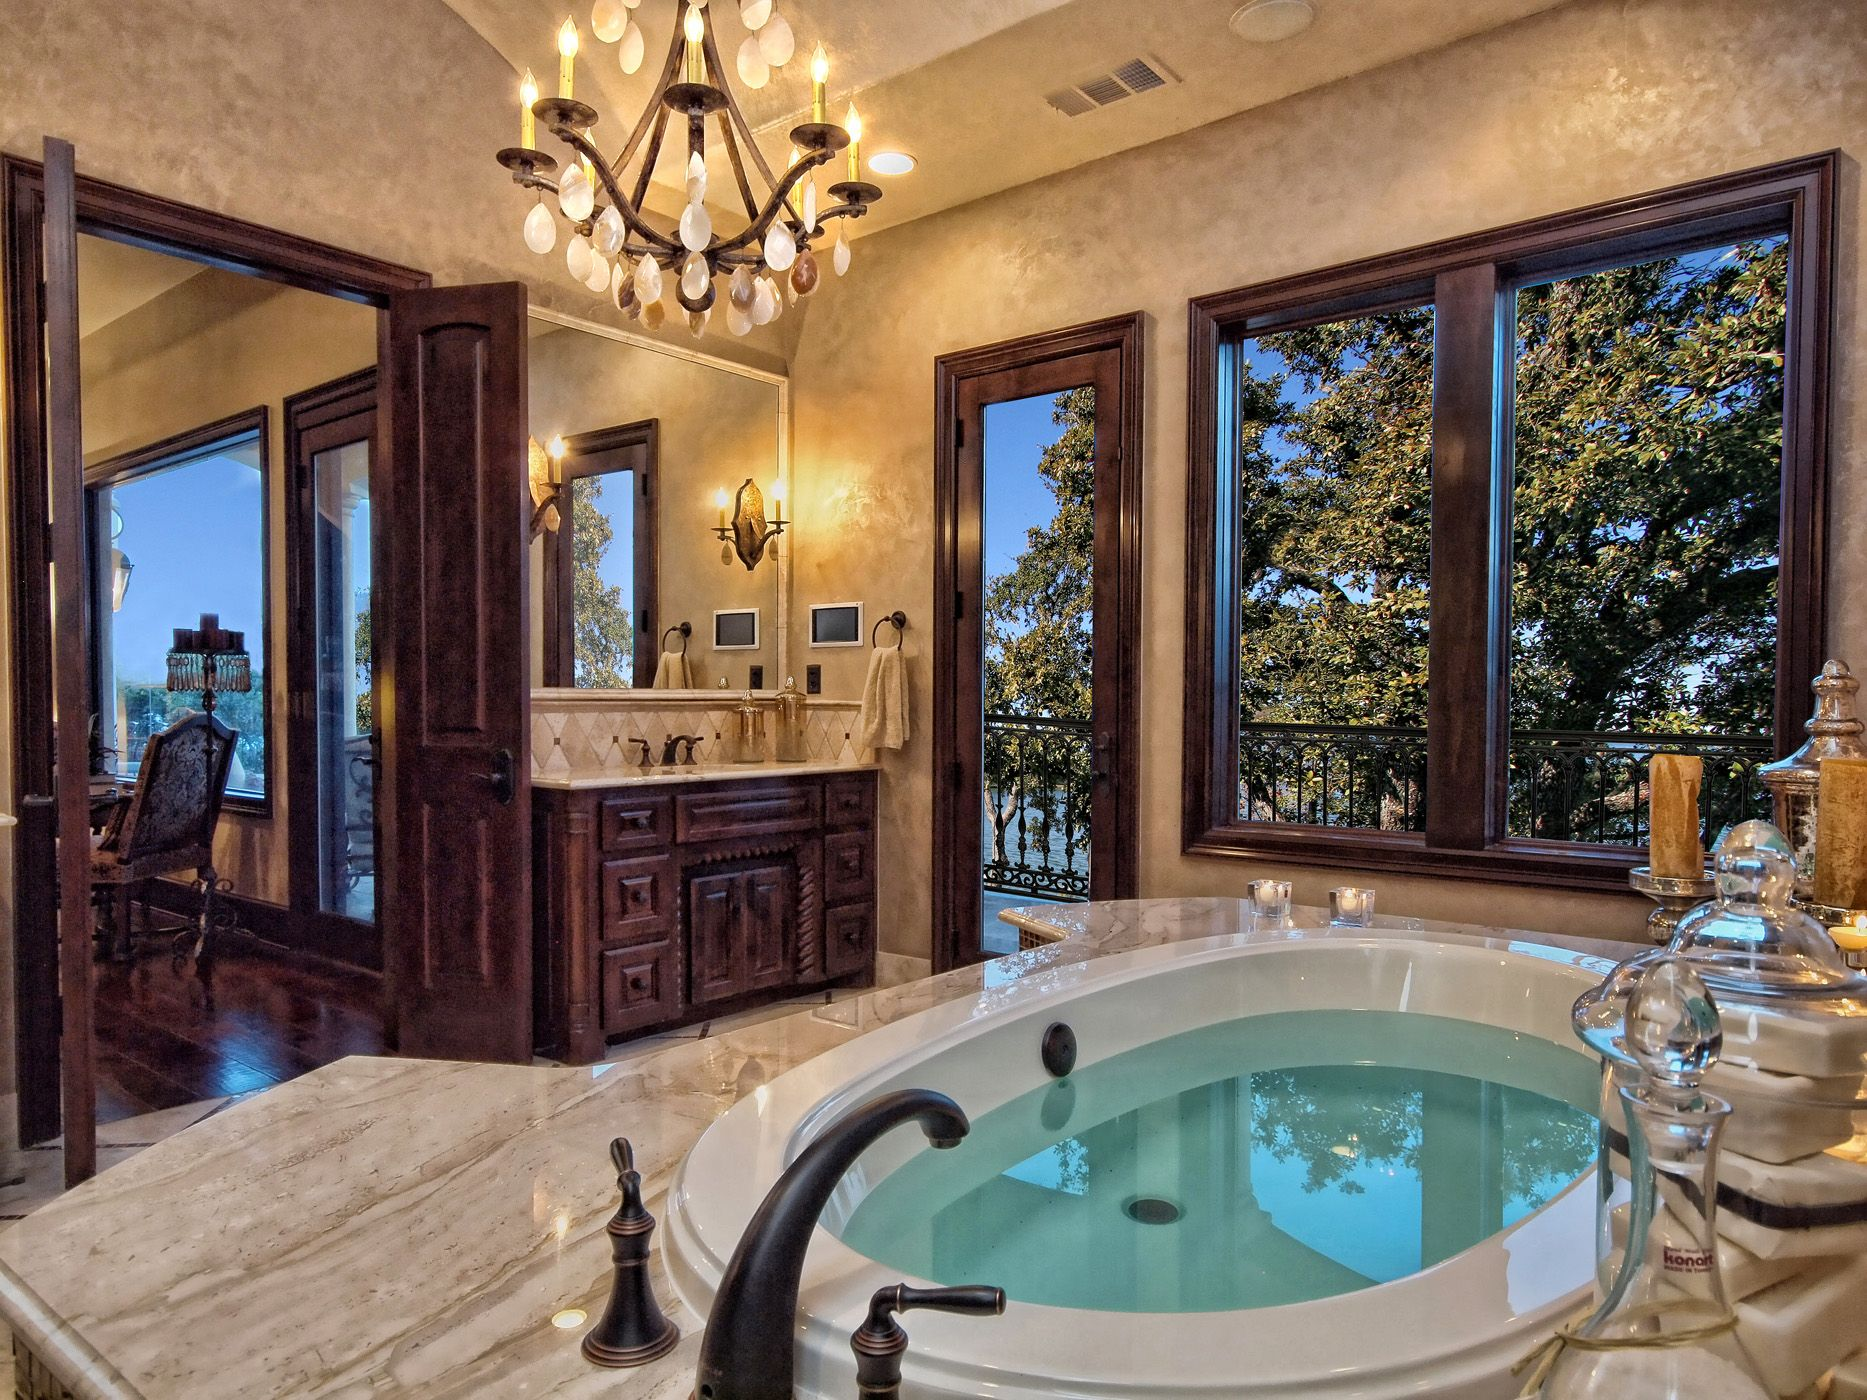 Luxury homes interior bathrooms - Luxury Mediterranean Bathrooms Bathrooms Horseshoe Bay Mediterranean Style Master